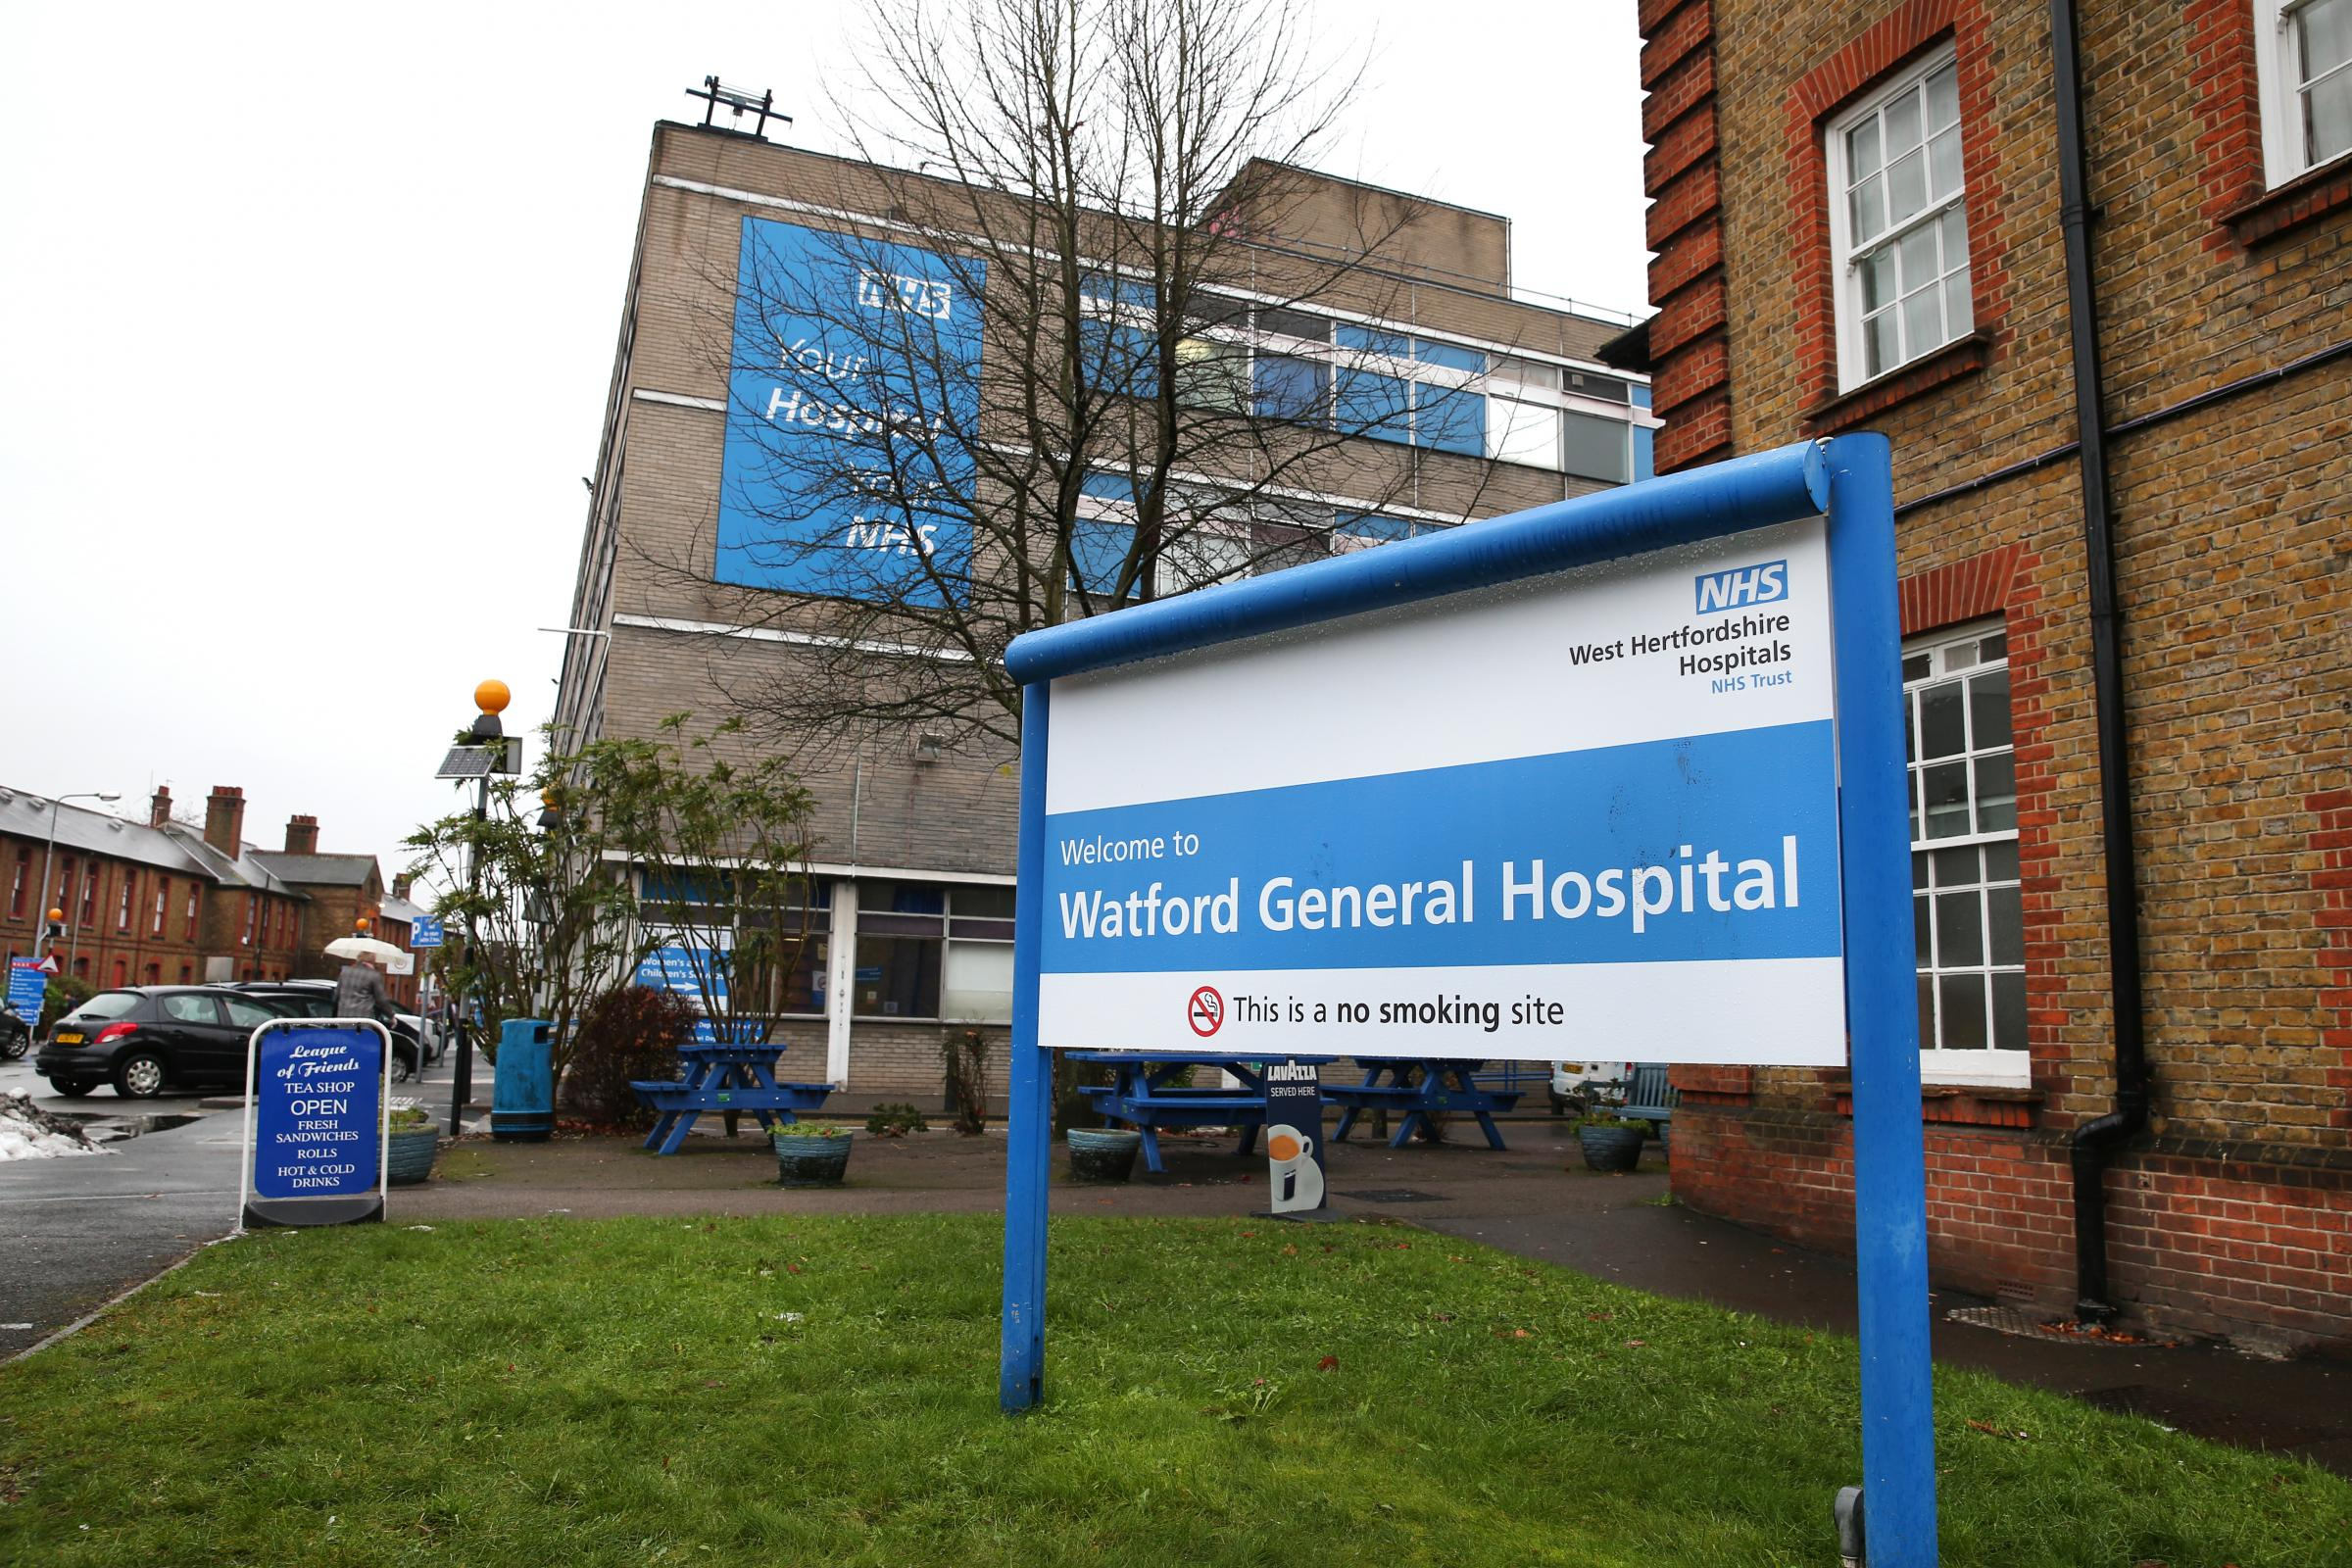 Watford General Hospital, which is run by the West Hertfordshire Hospitals NHS Trust